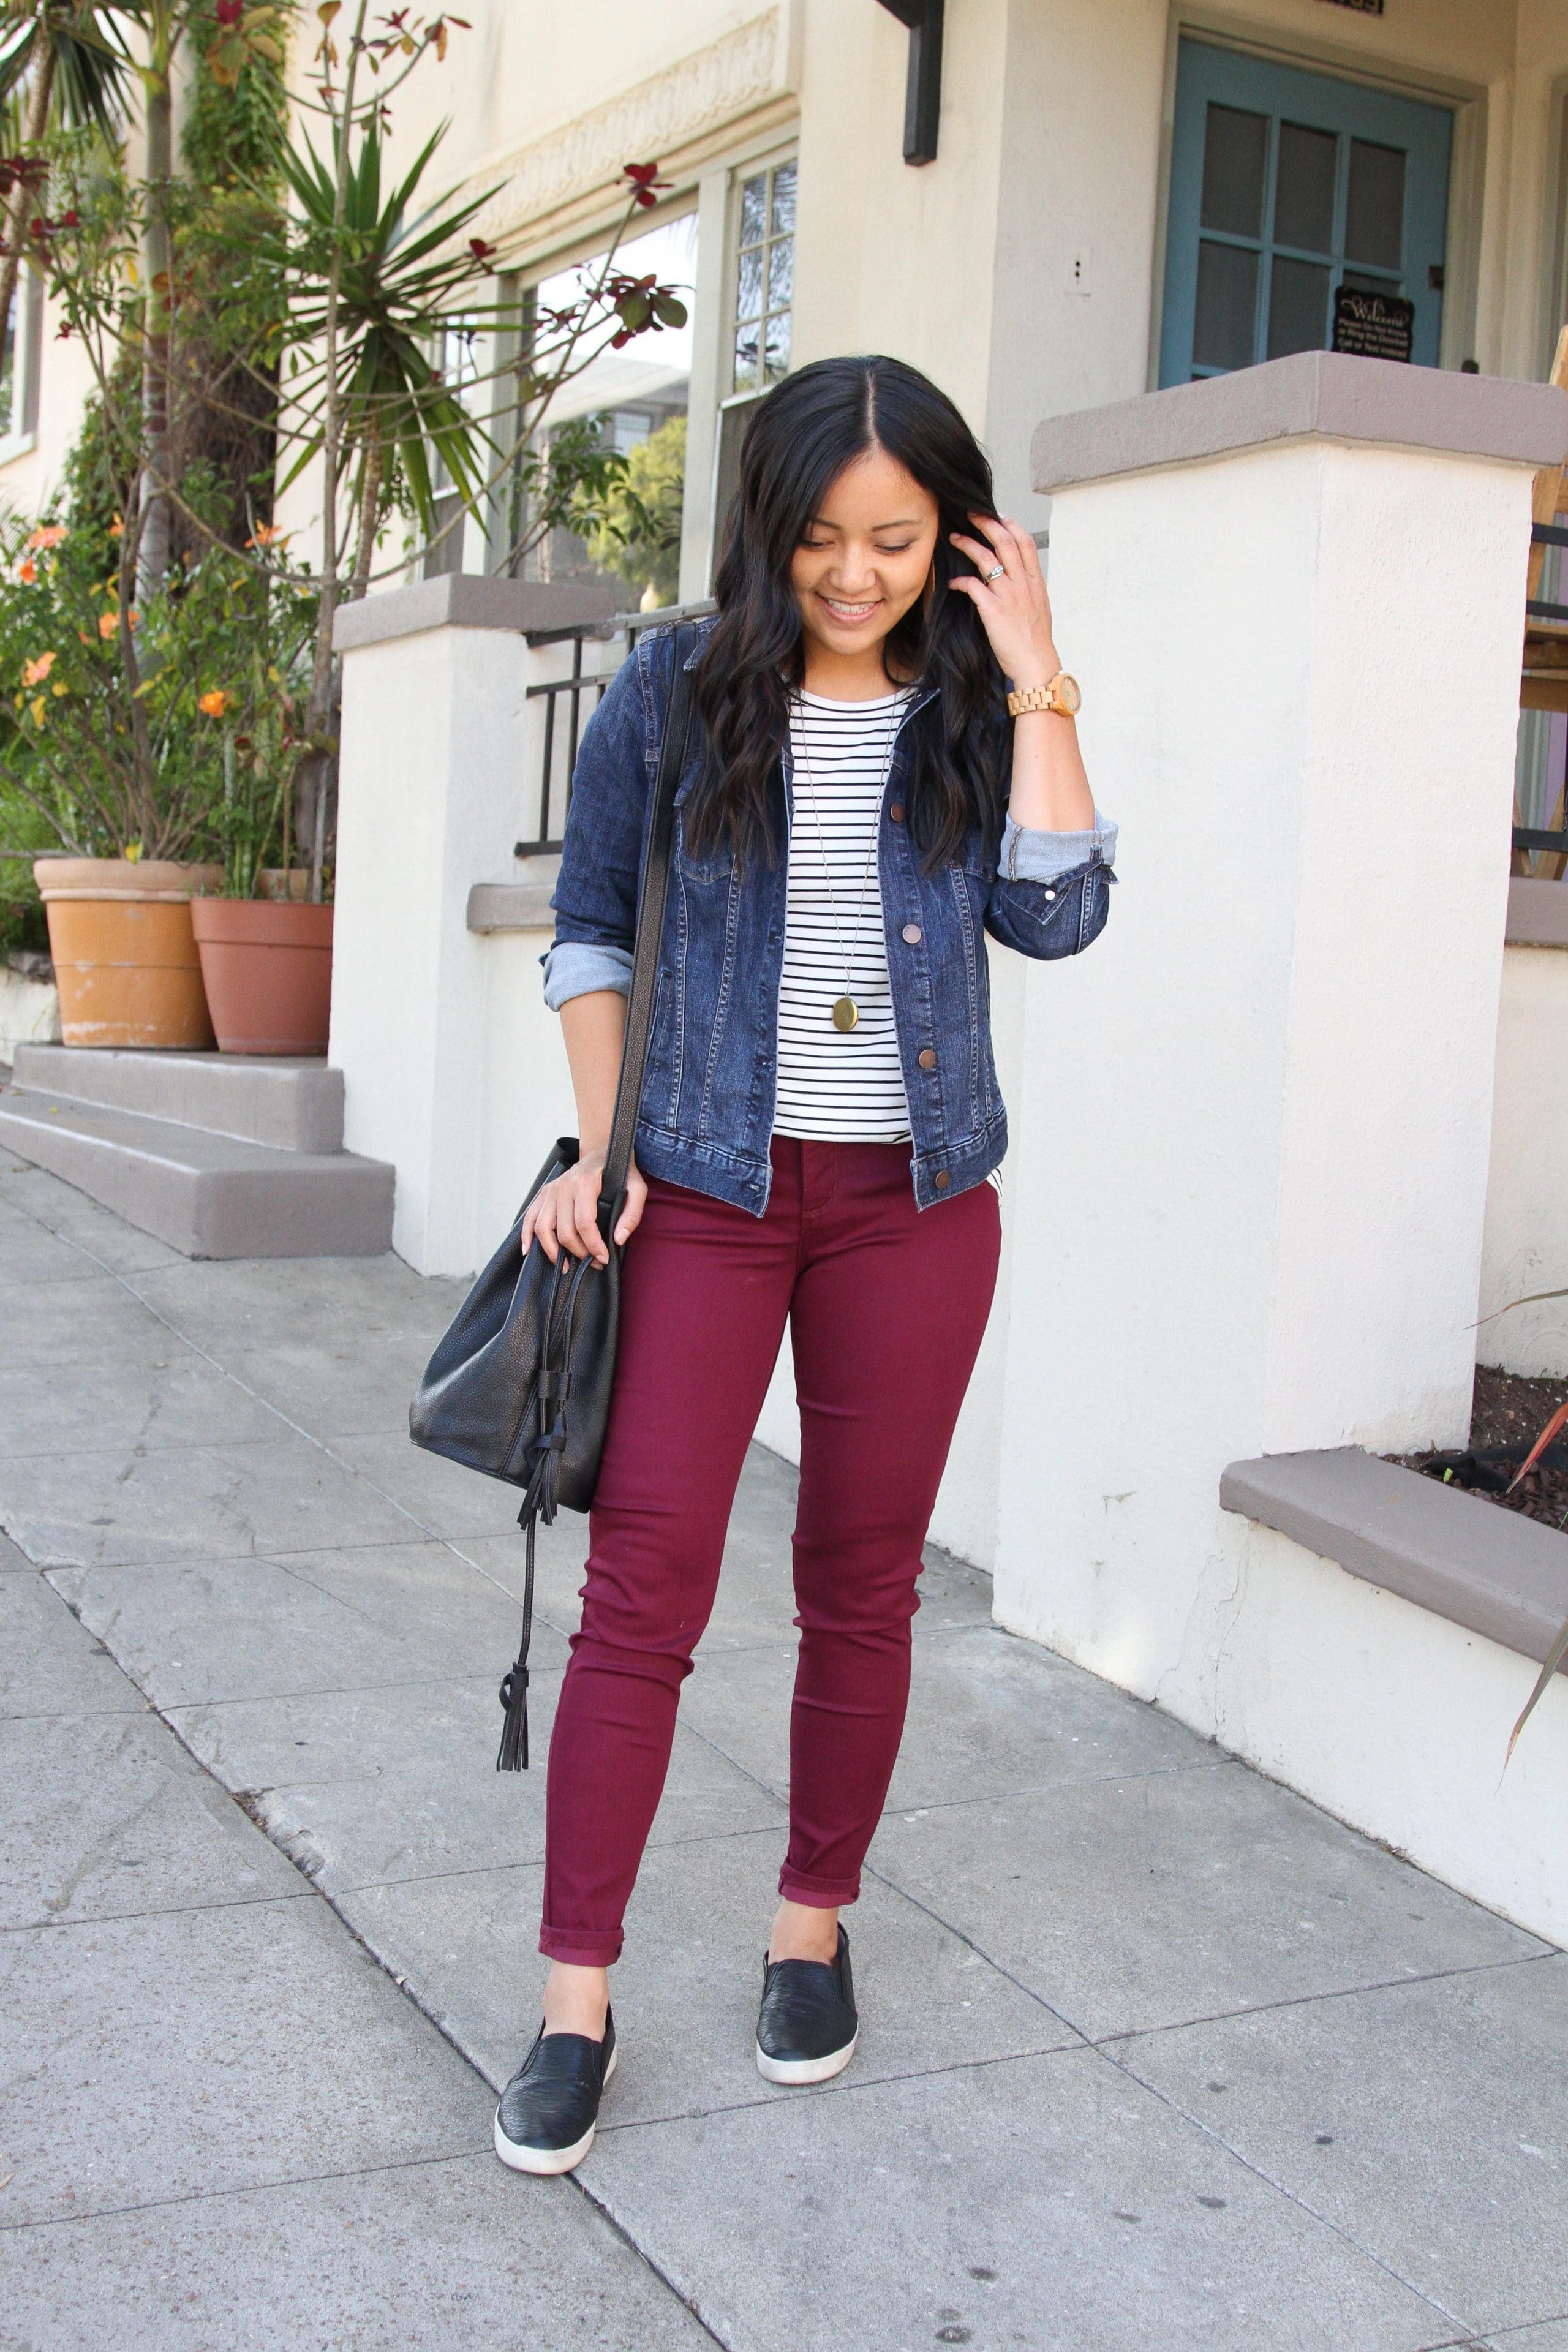 black and white striped tee + denim jacket + maroon pants + black slip on shoes + black purse